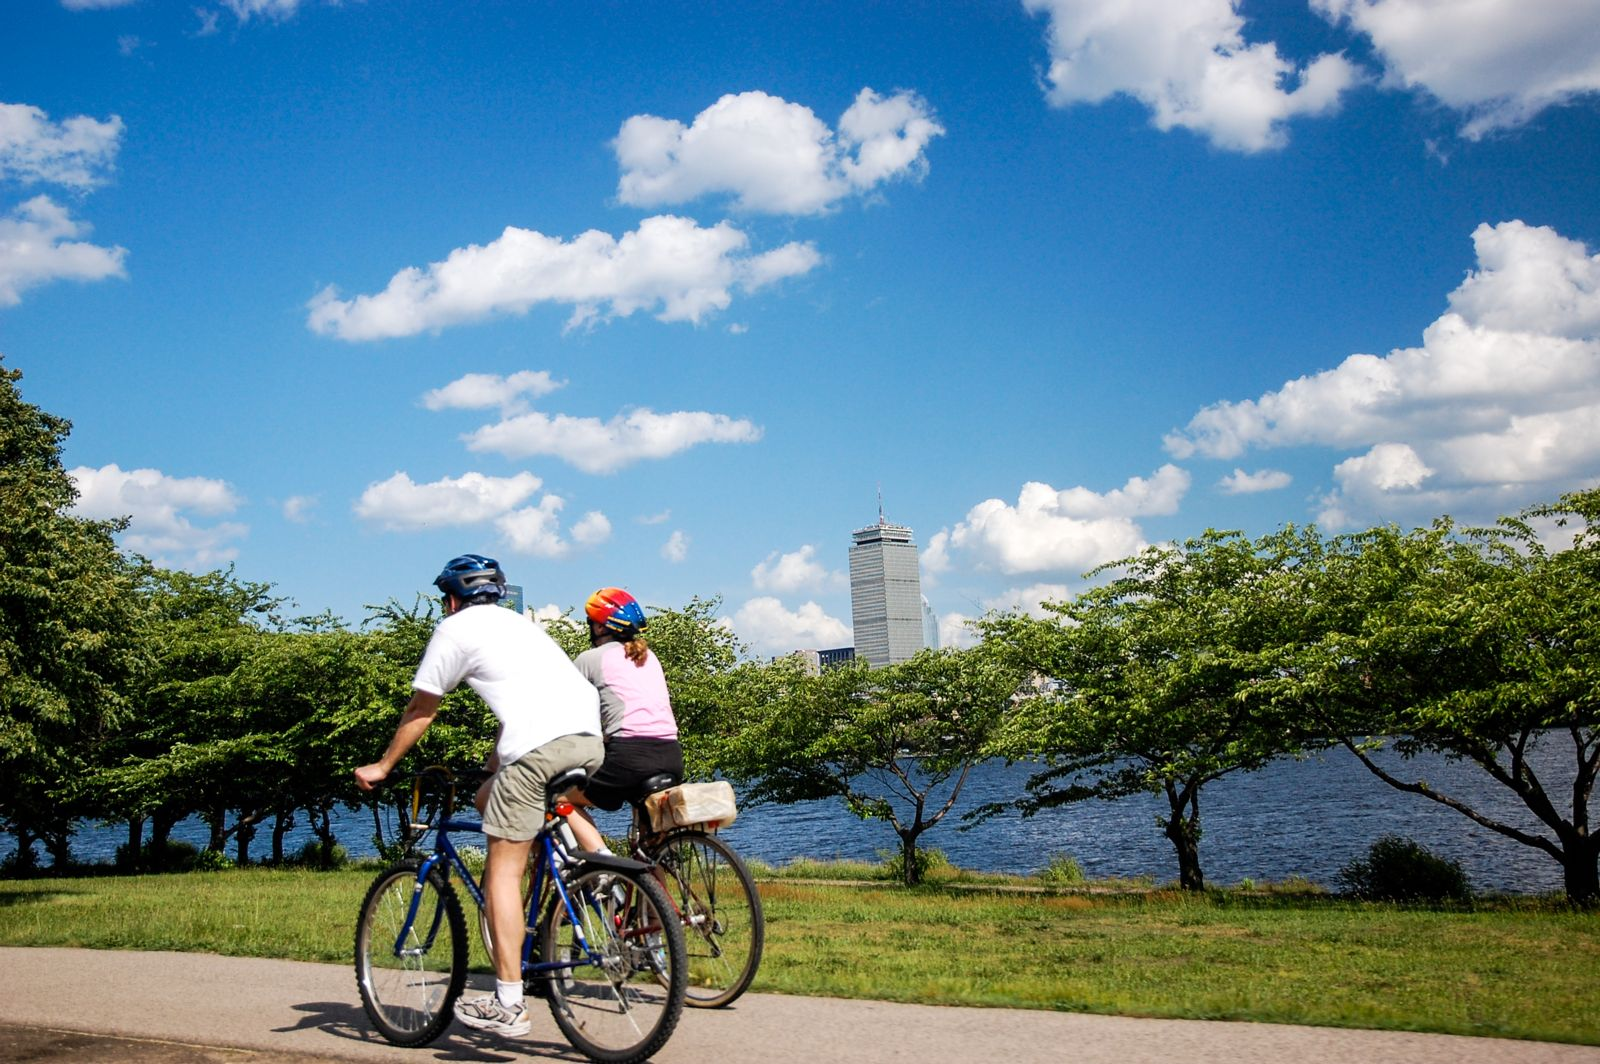 Get your bicycle ready for riding in Boston this Spring